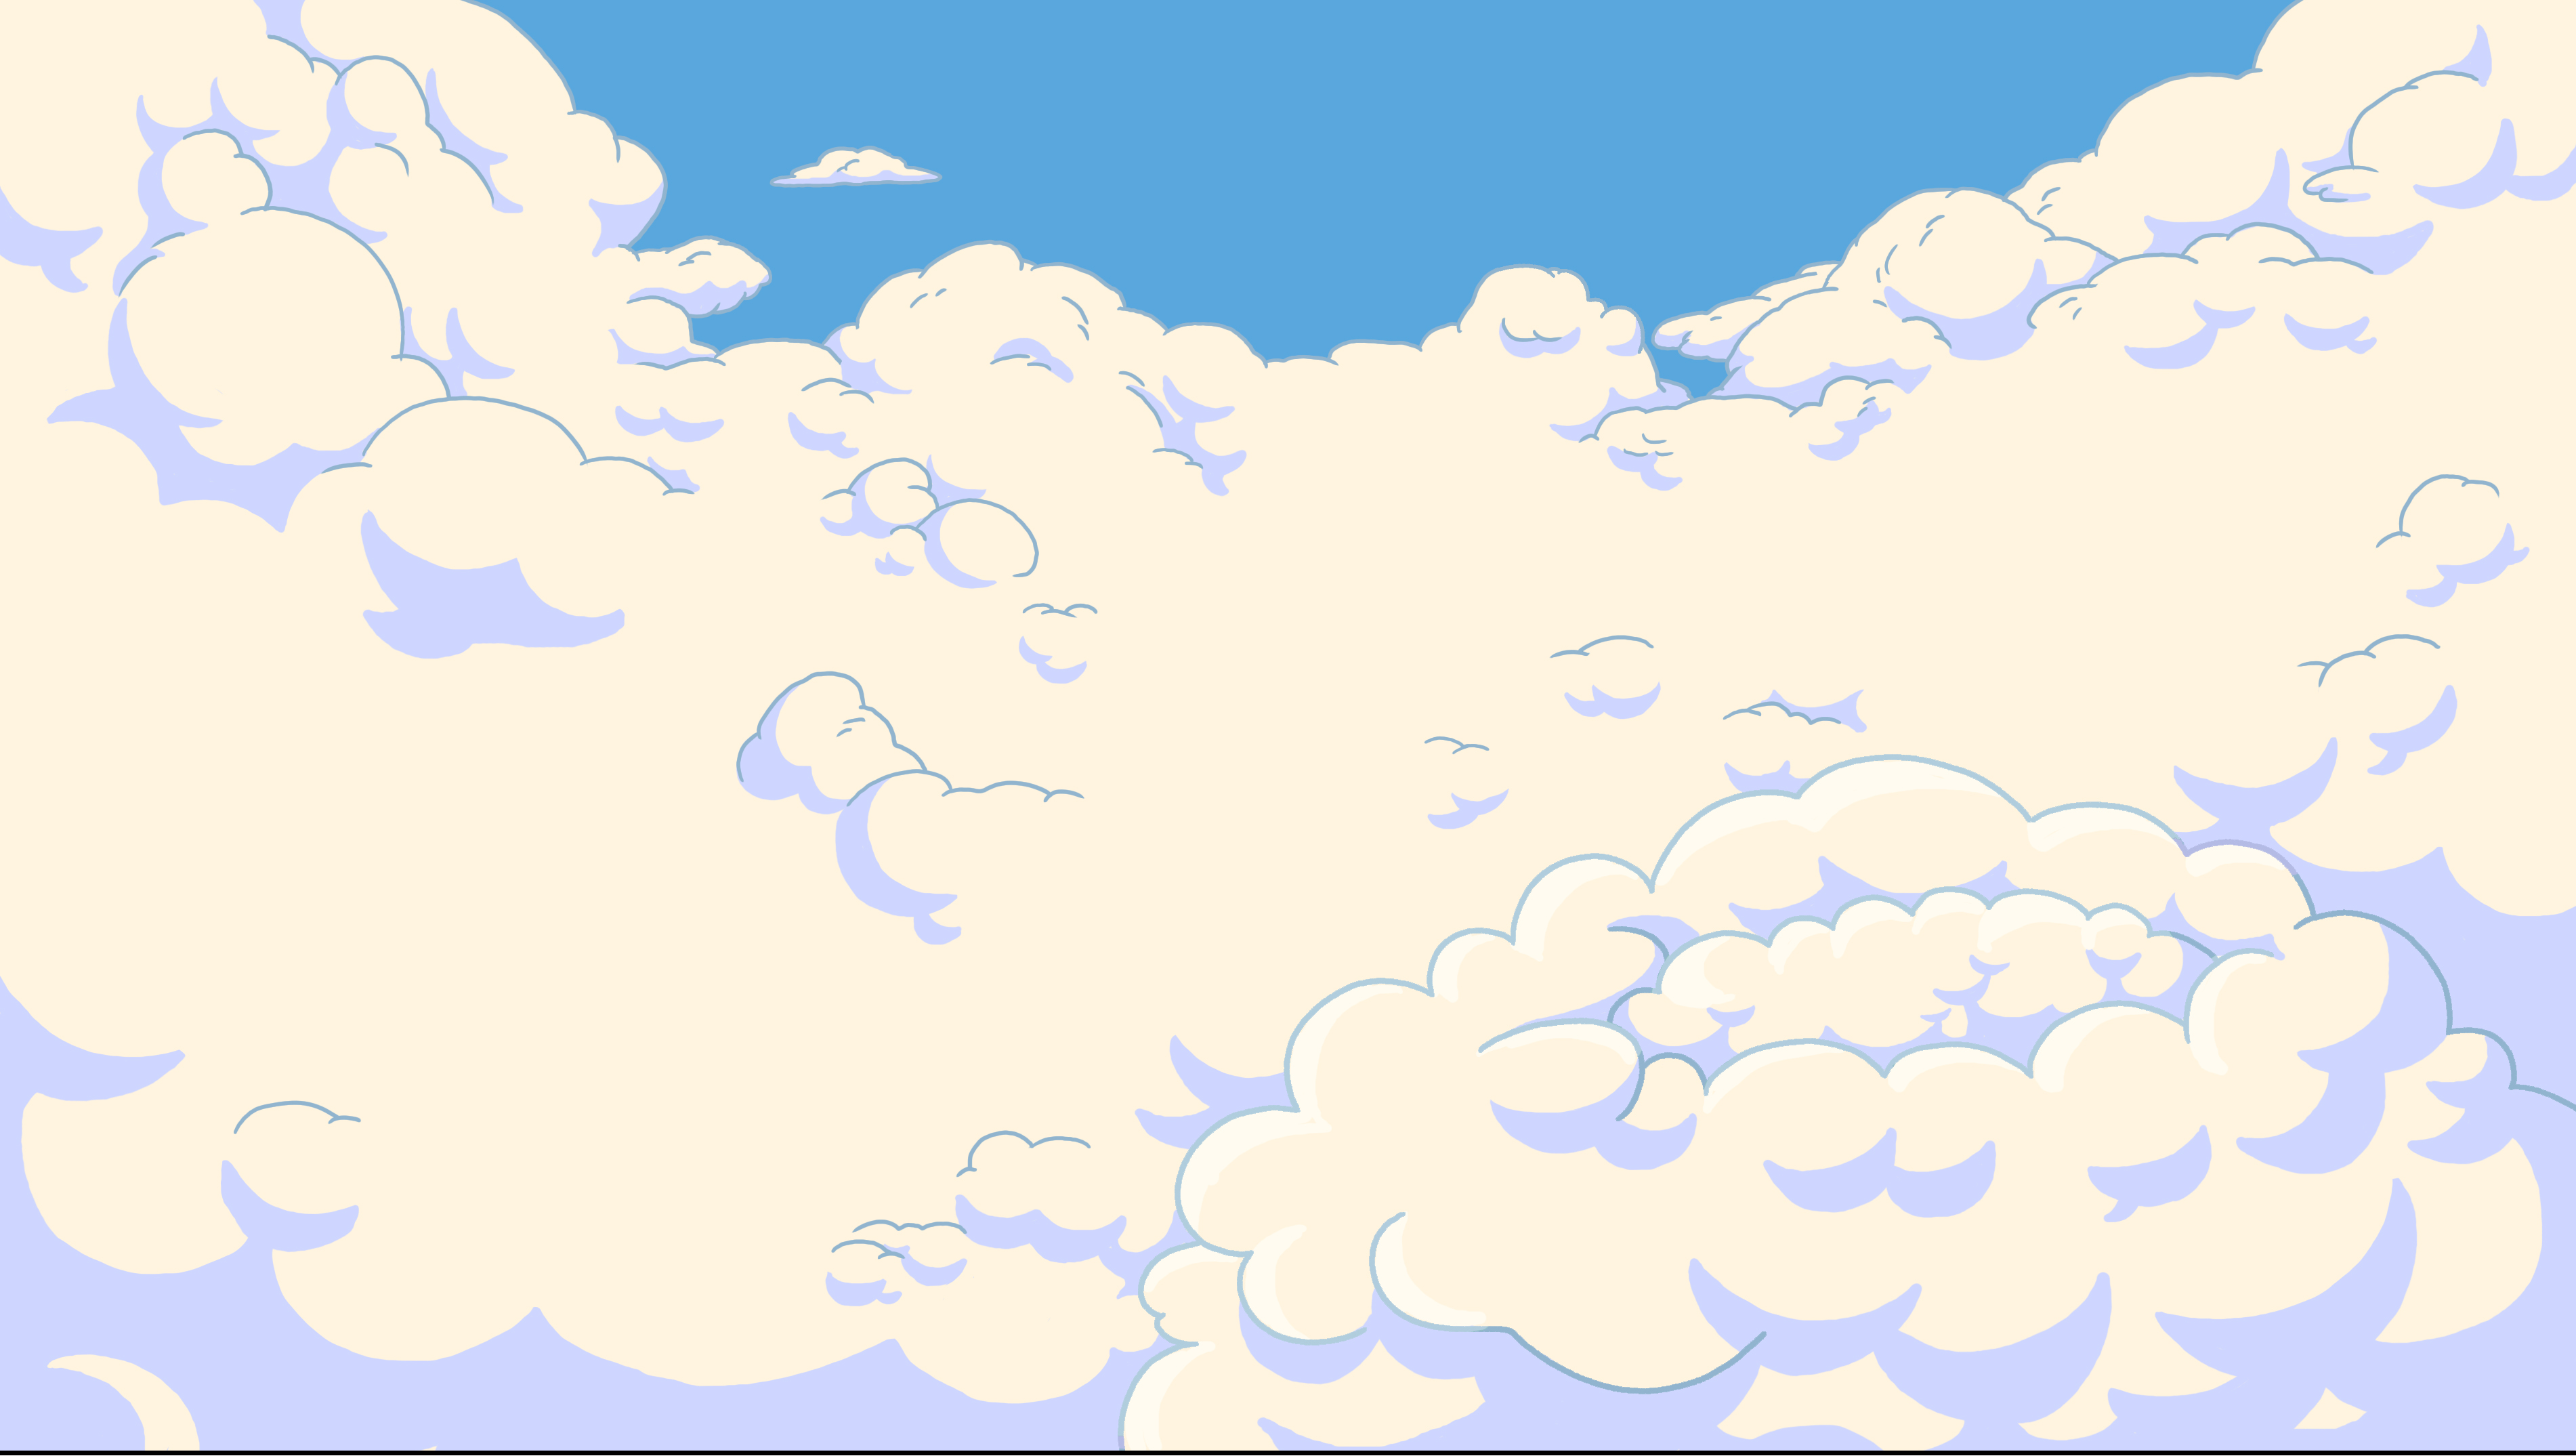 adventure time blue background - photo #43